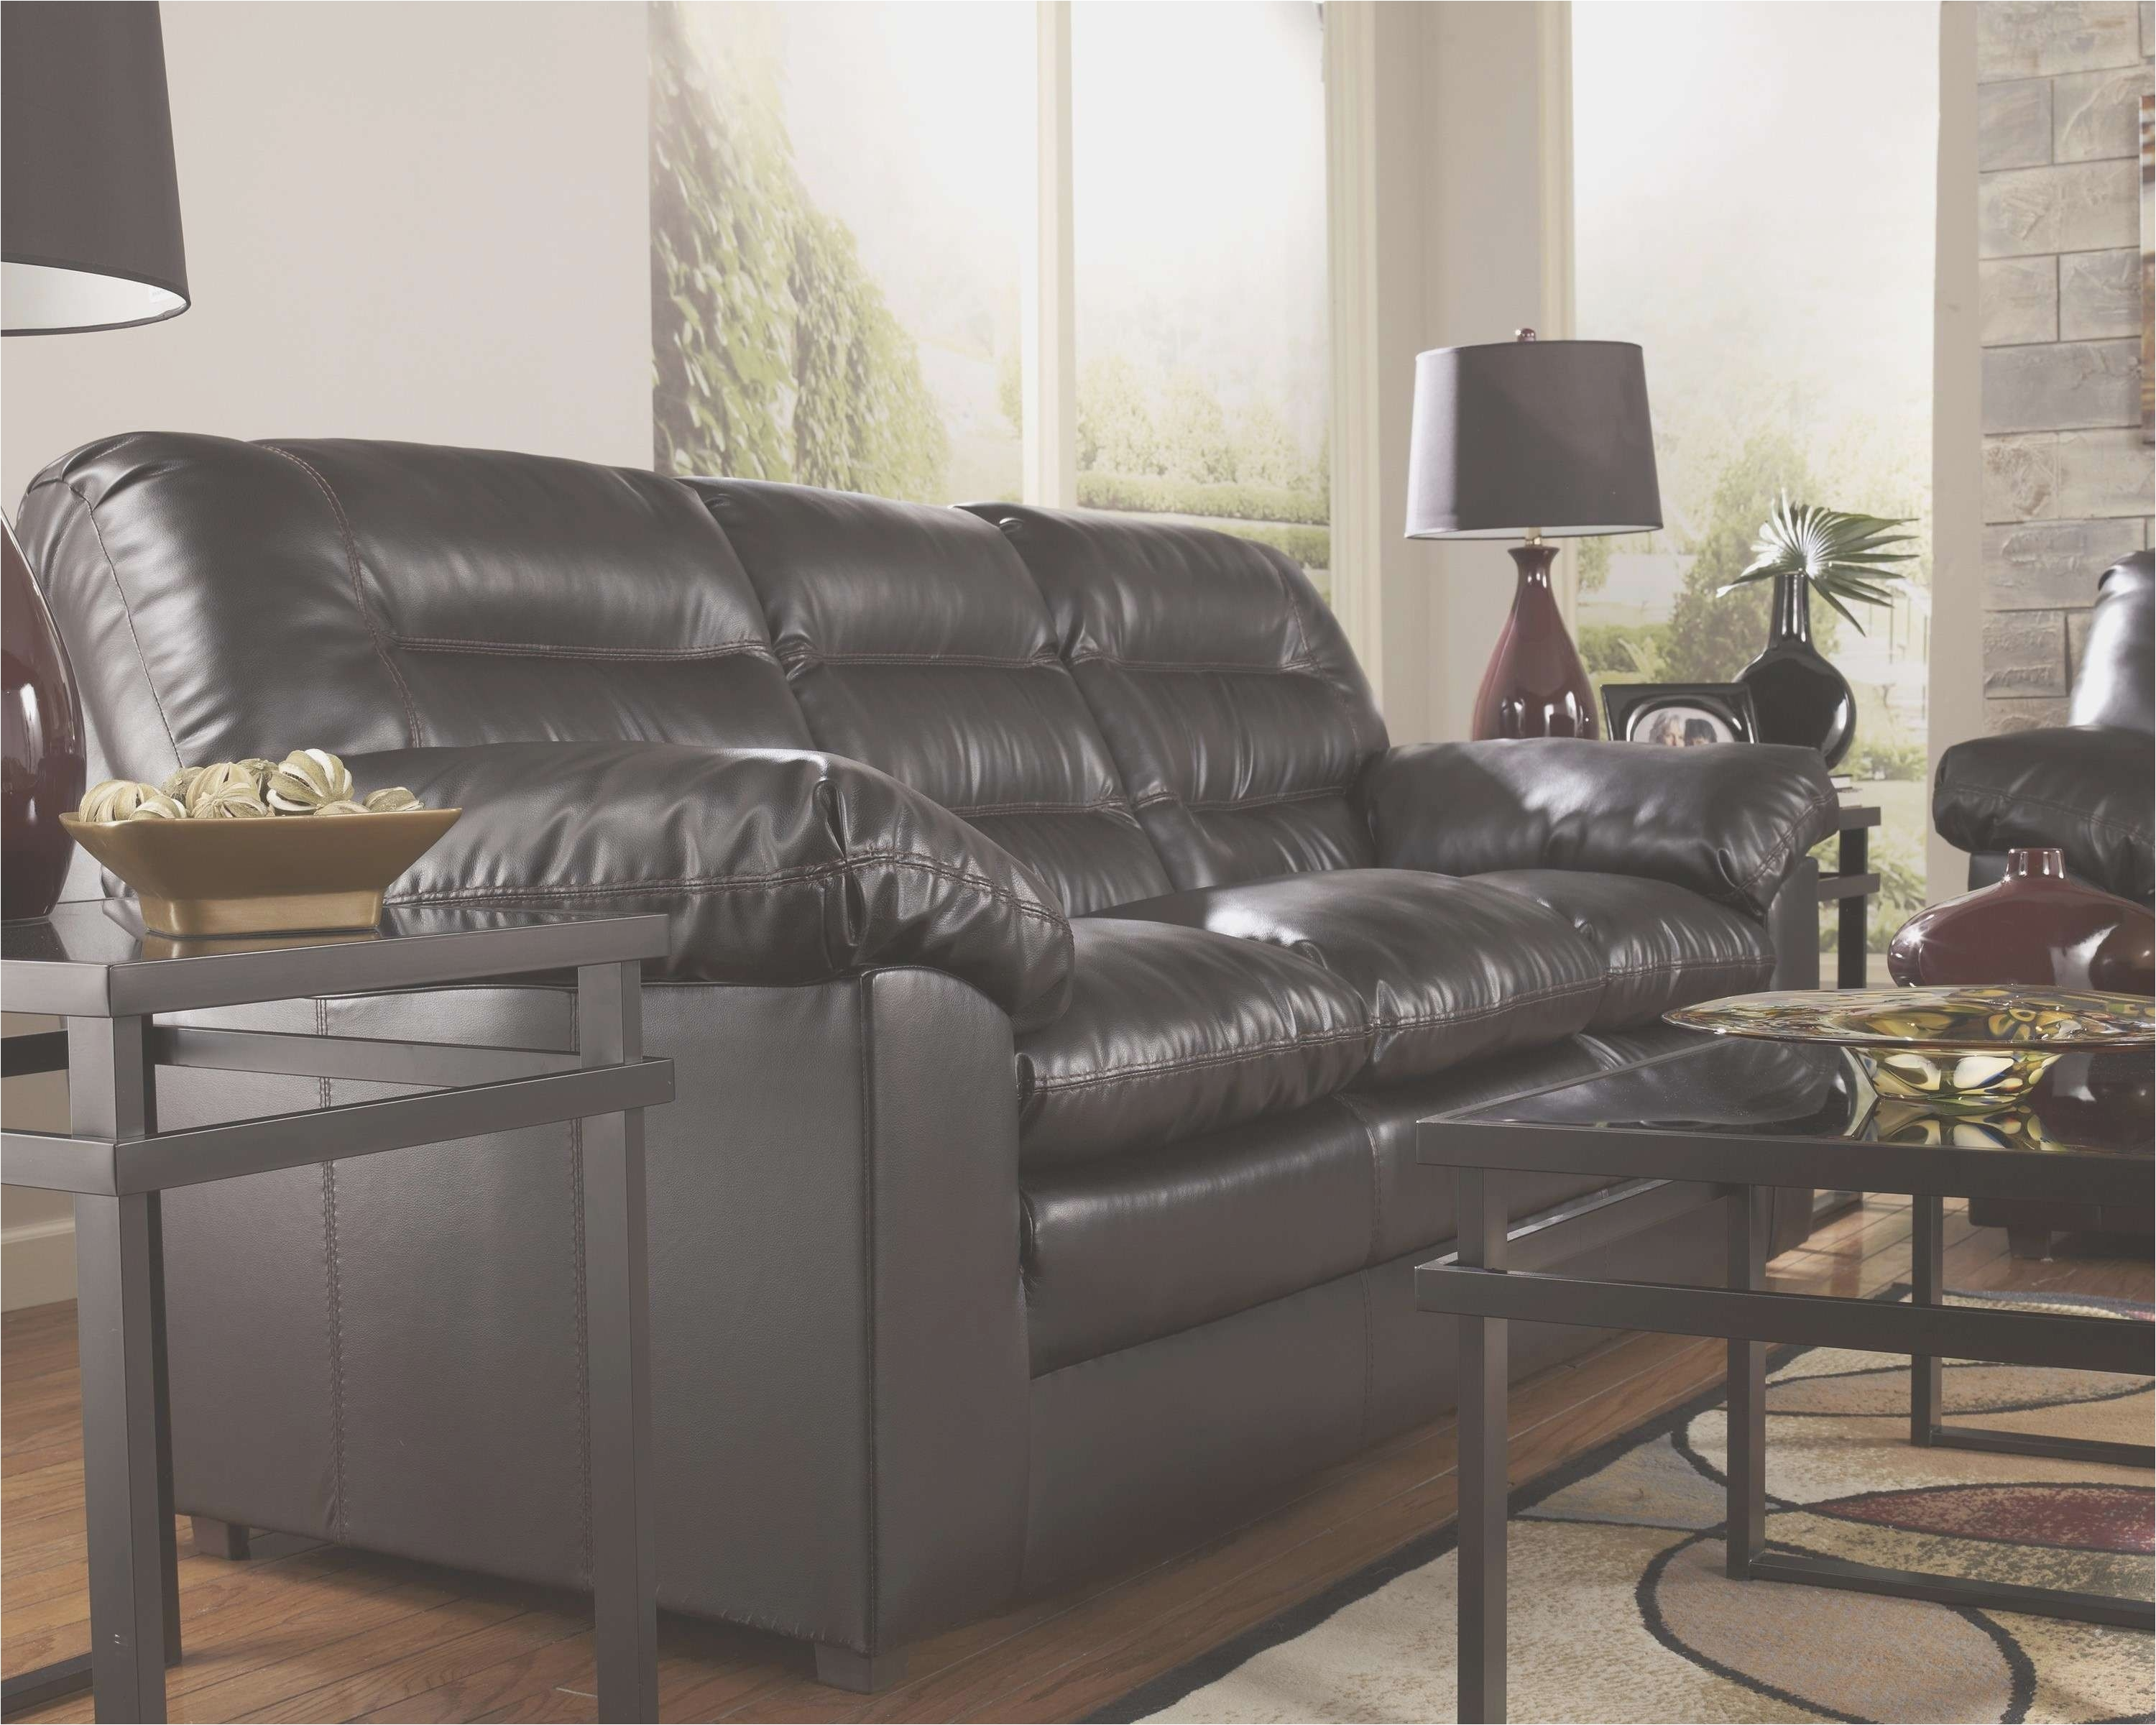 29 sectional sleeper couch creative ashley furniture sale awesome leather sofas for best wicker outdoor